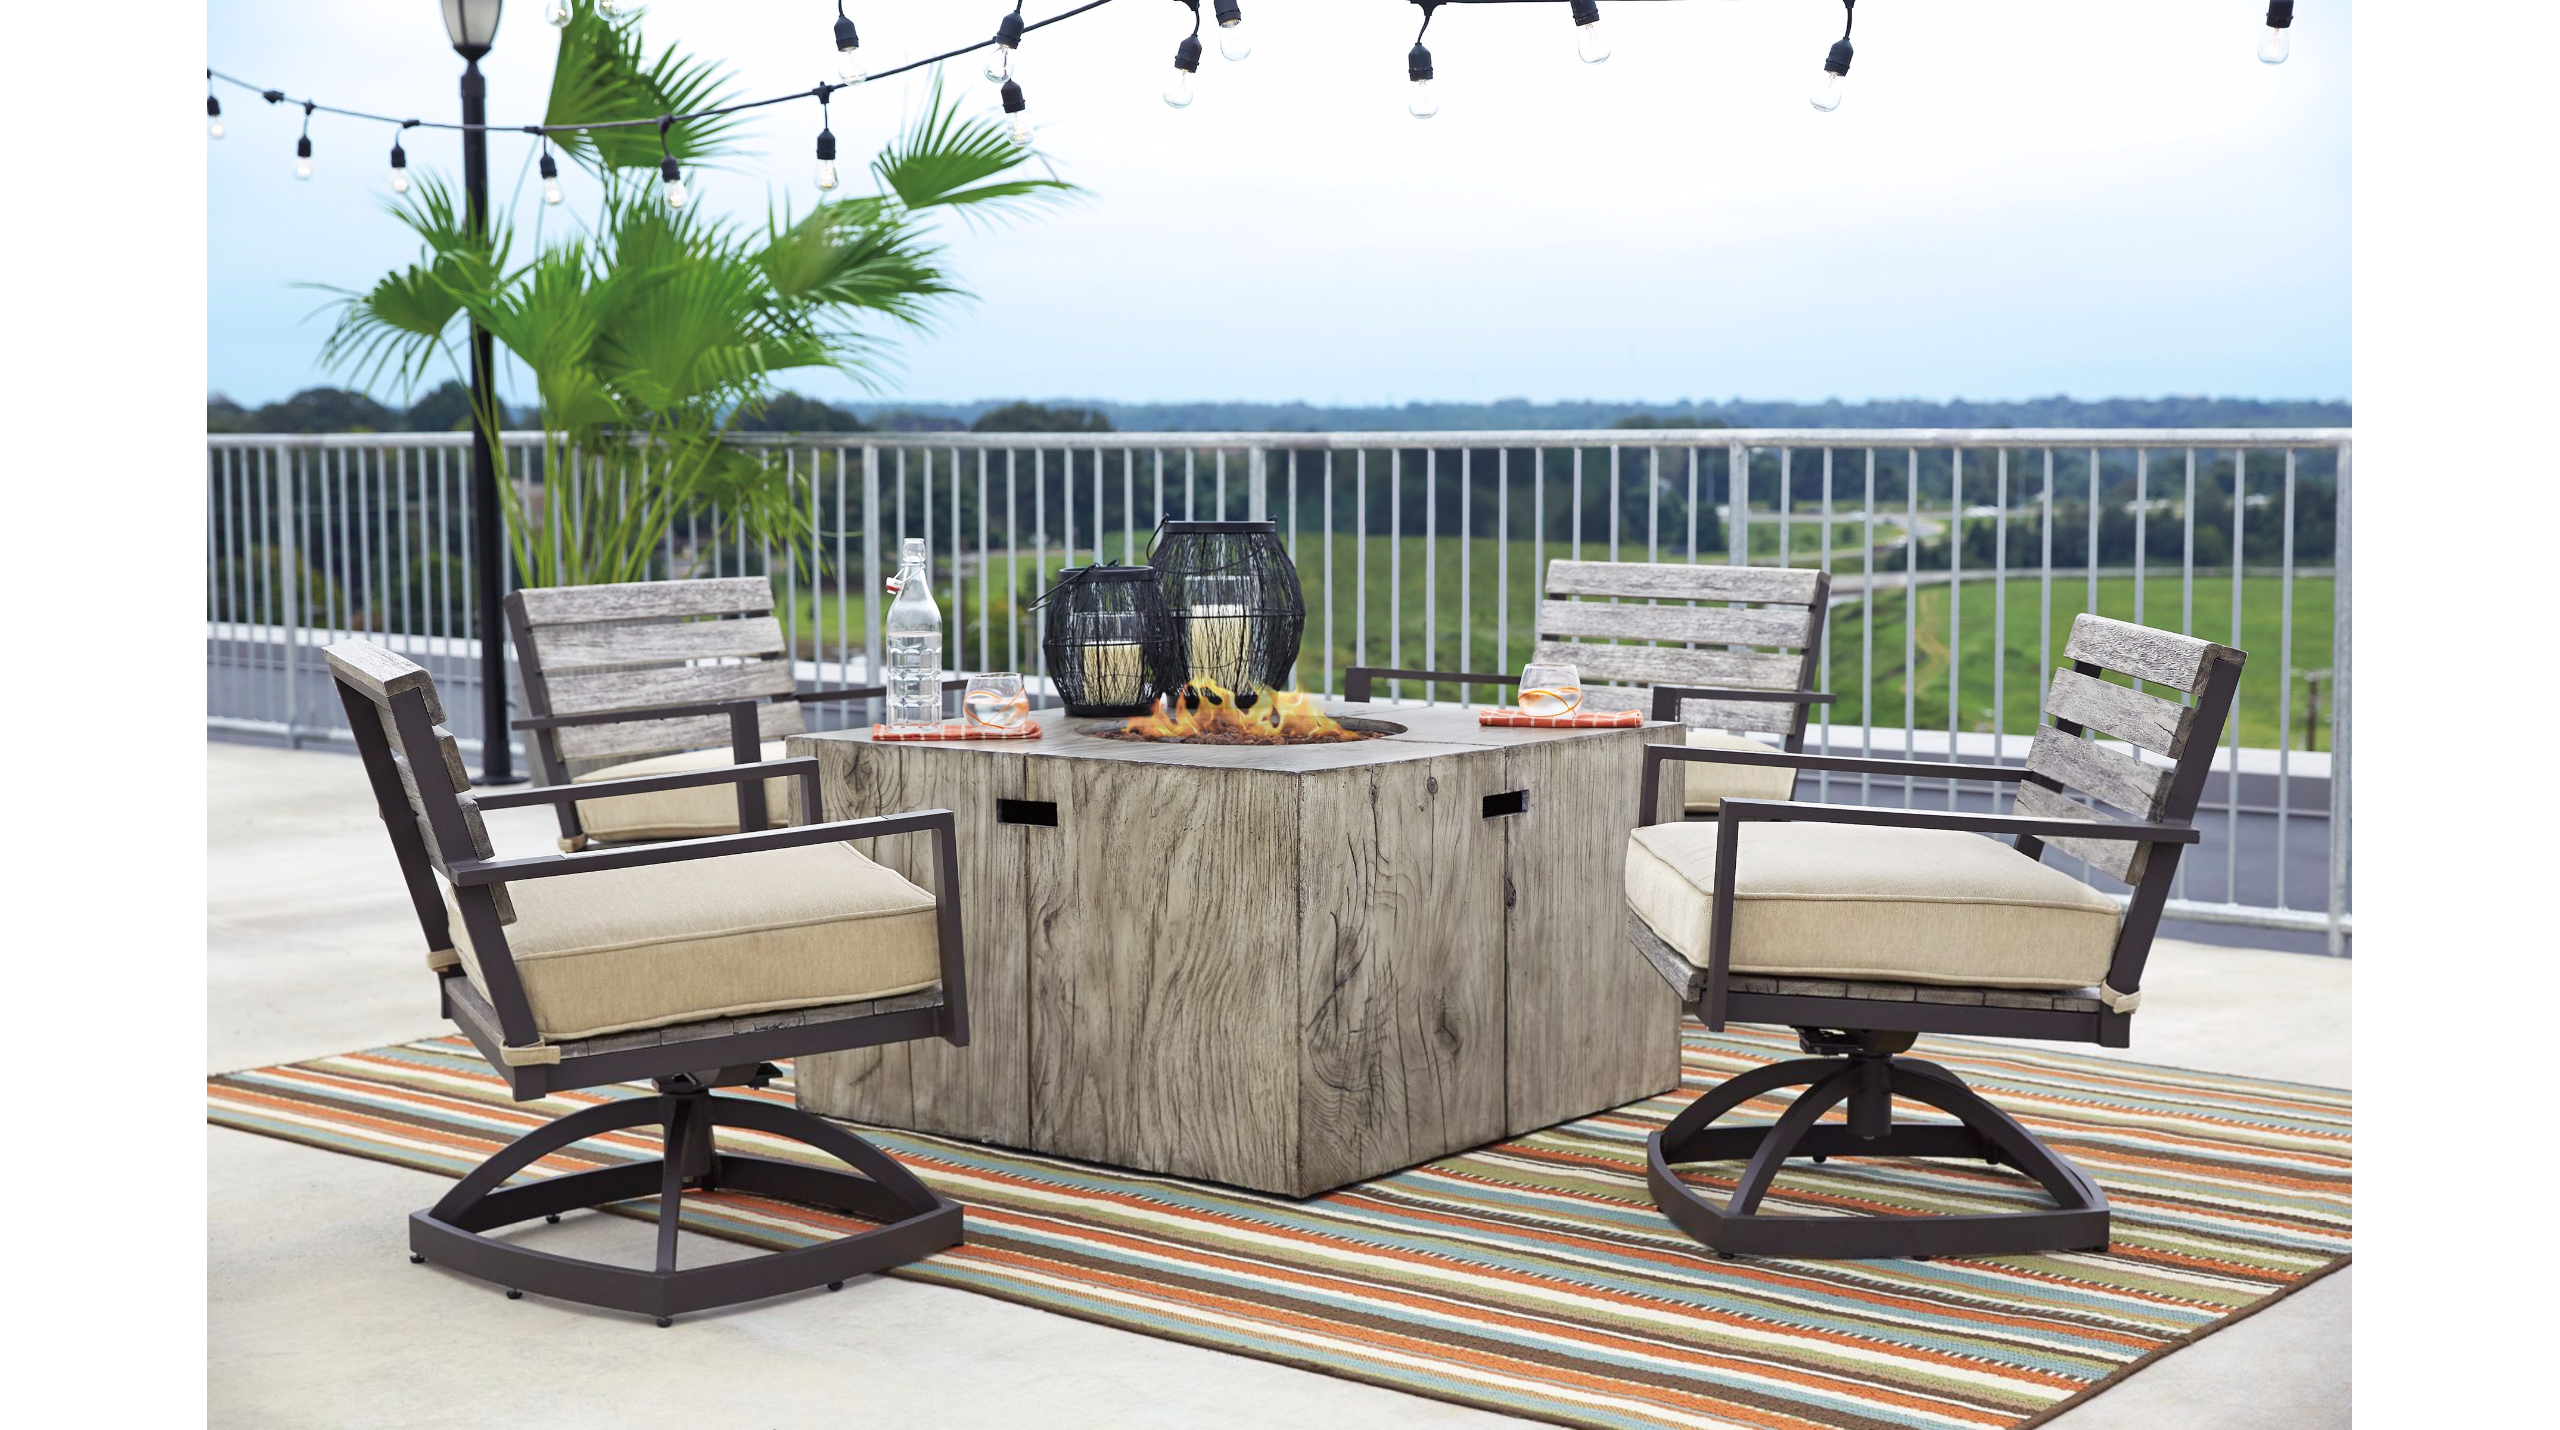 Ashley Peachstone Modern Outdoor Furniture Inspiration Patio And